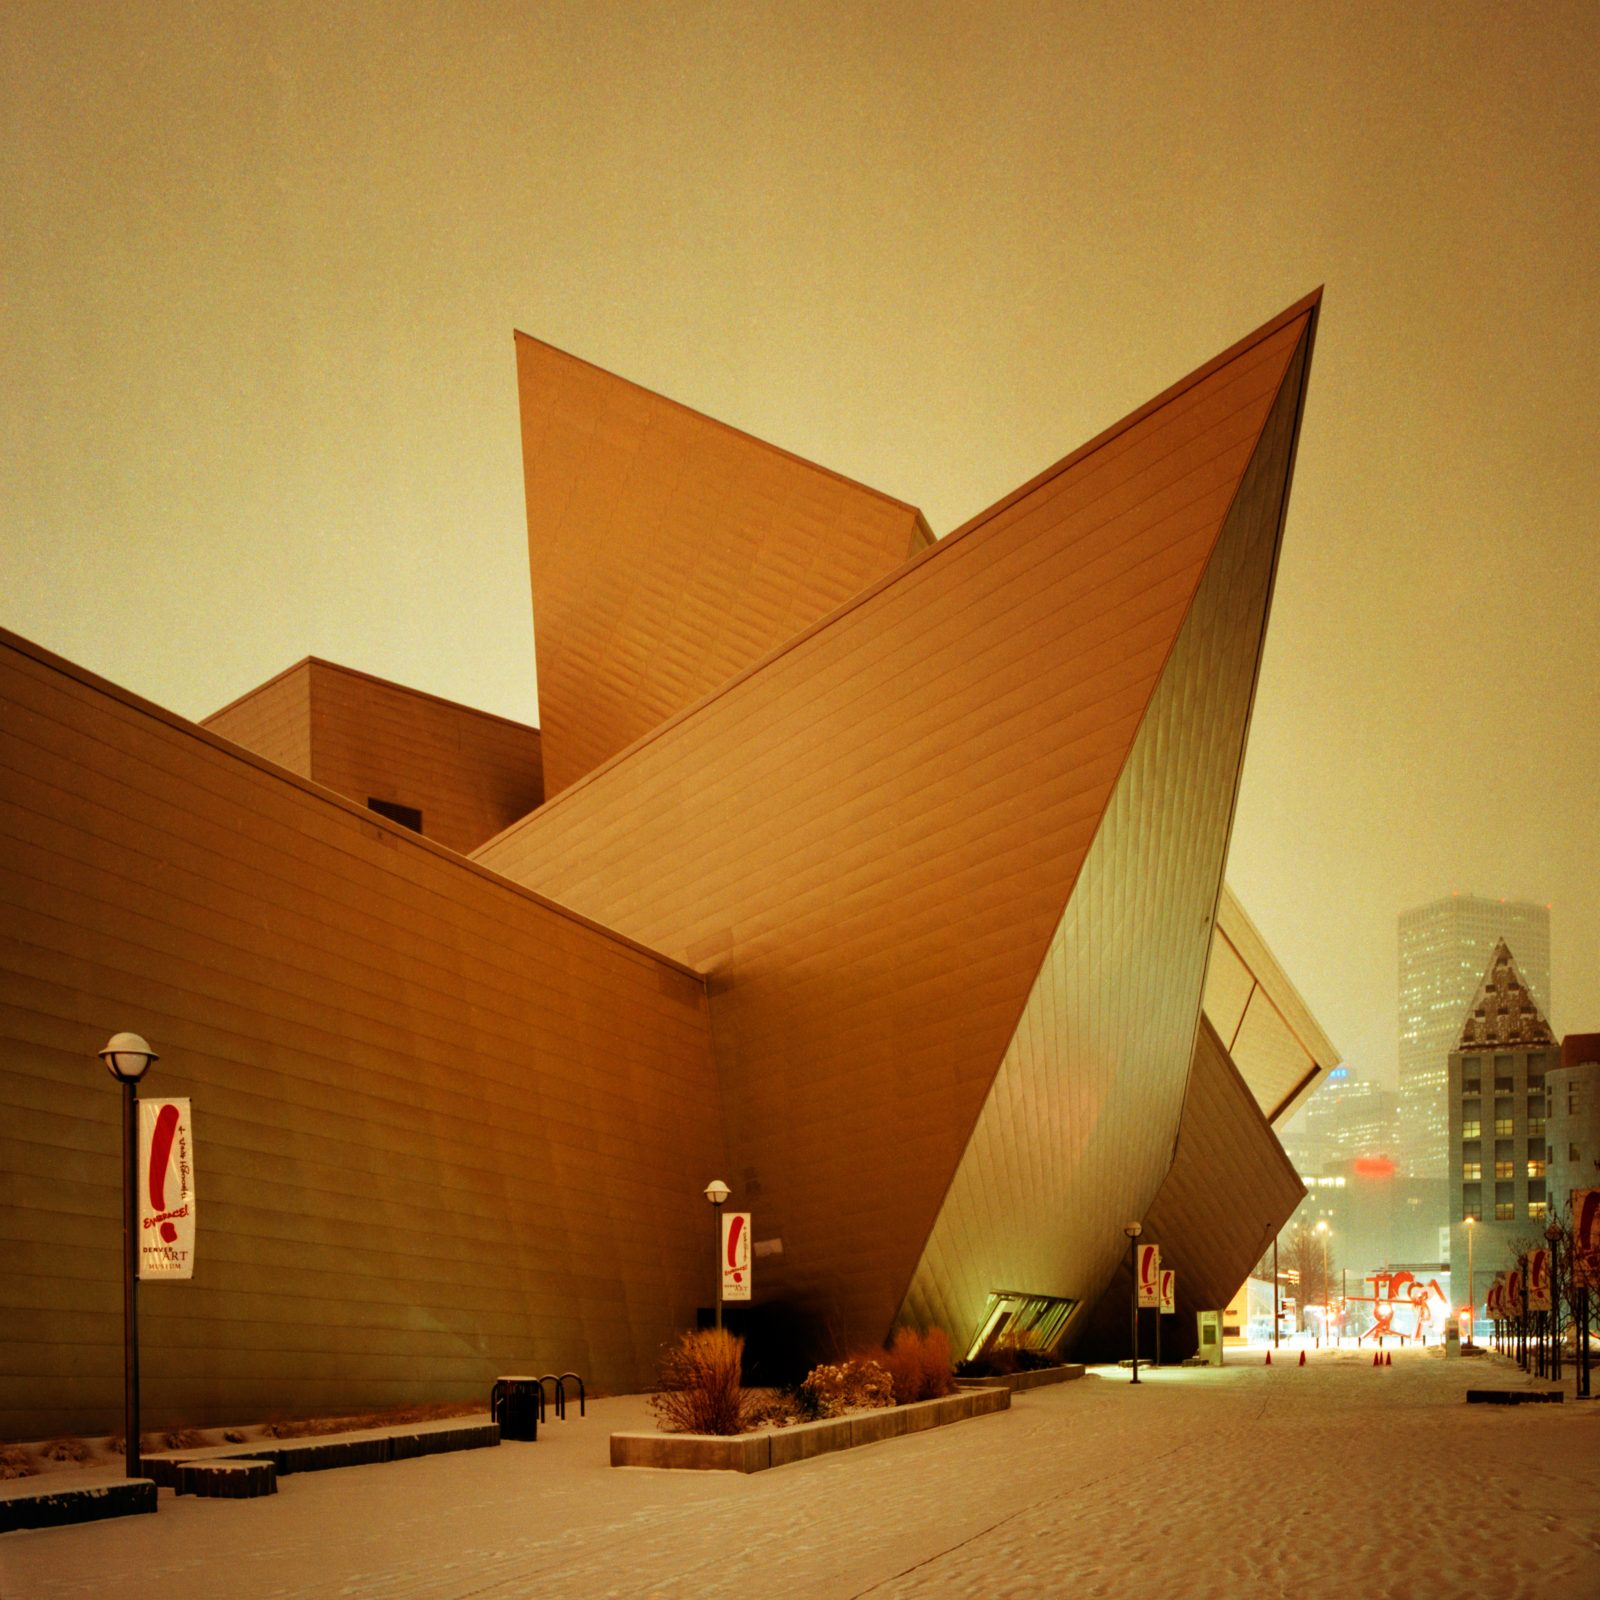 Denver Art Museum at night during a snowstorm